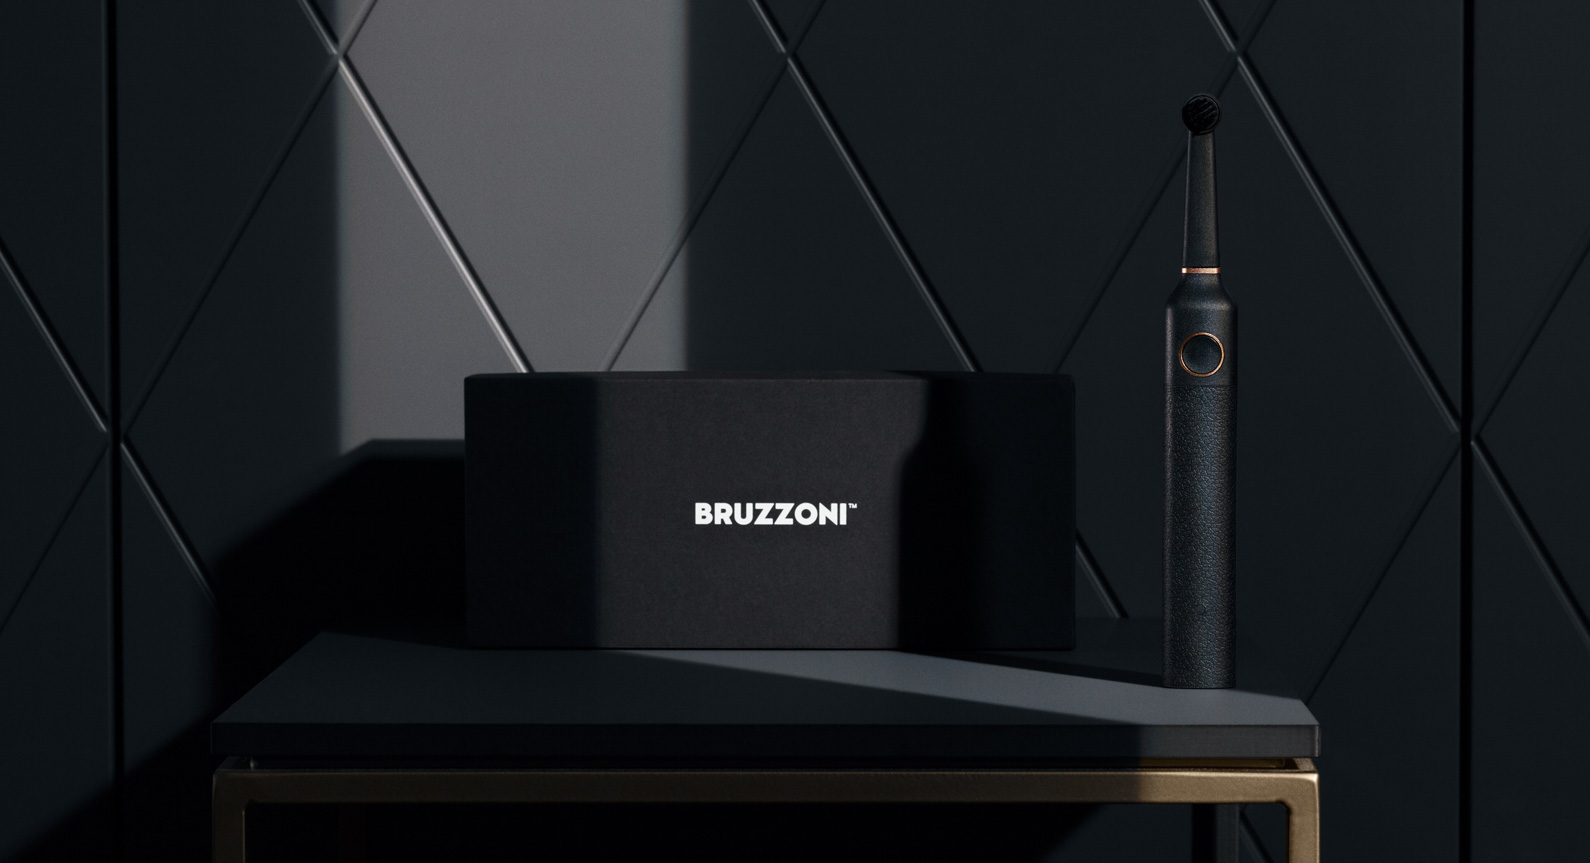 The Bruzzoni Electric Toothbrush Review